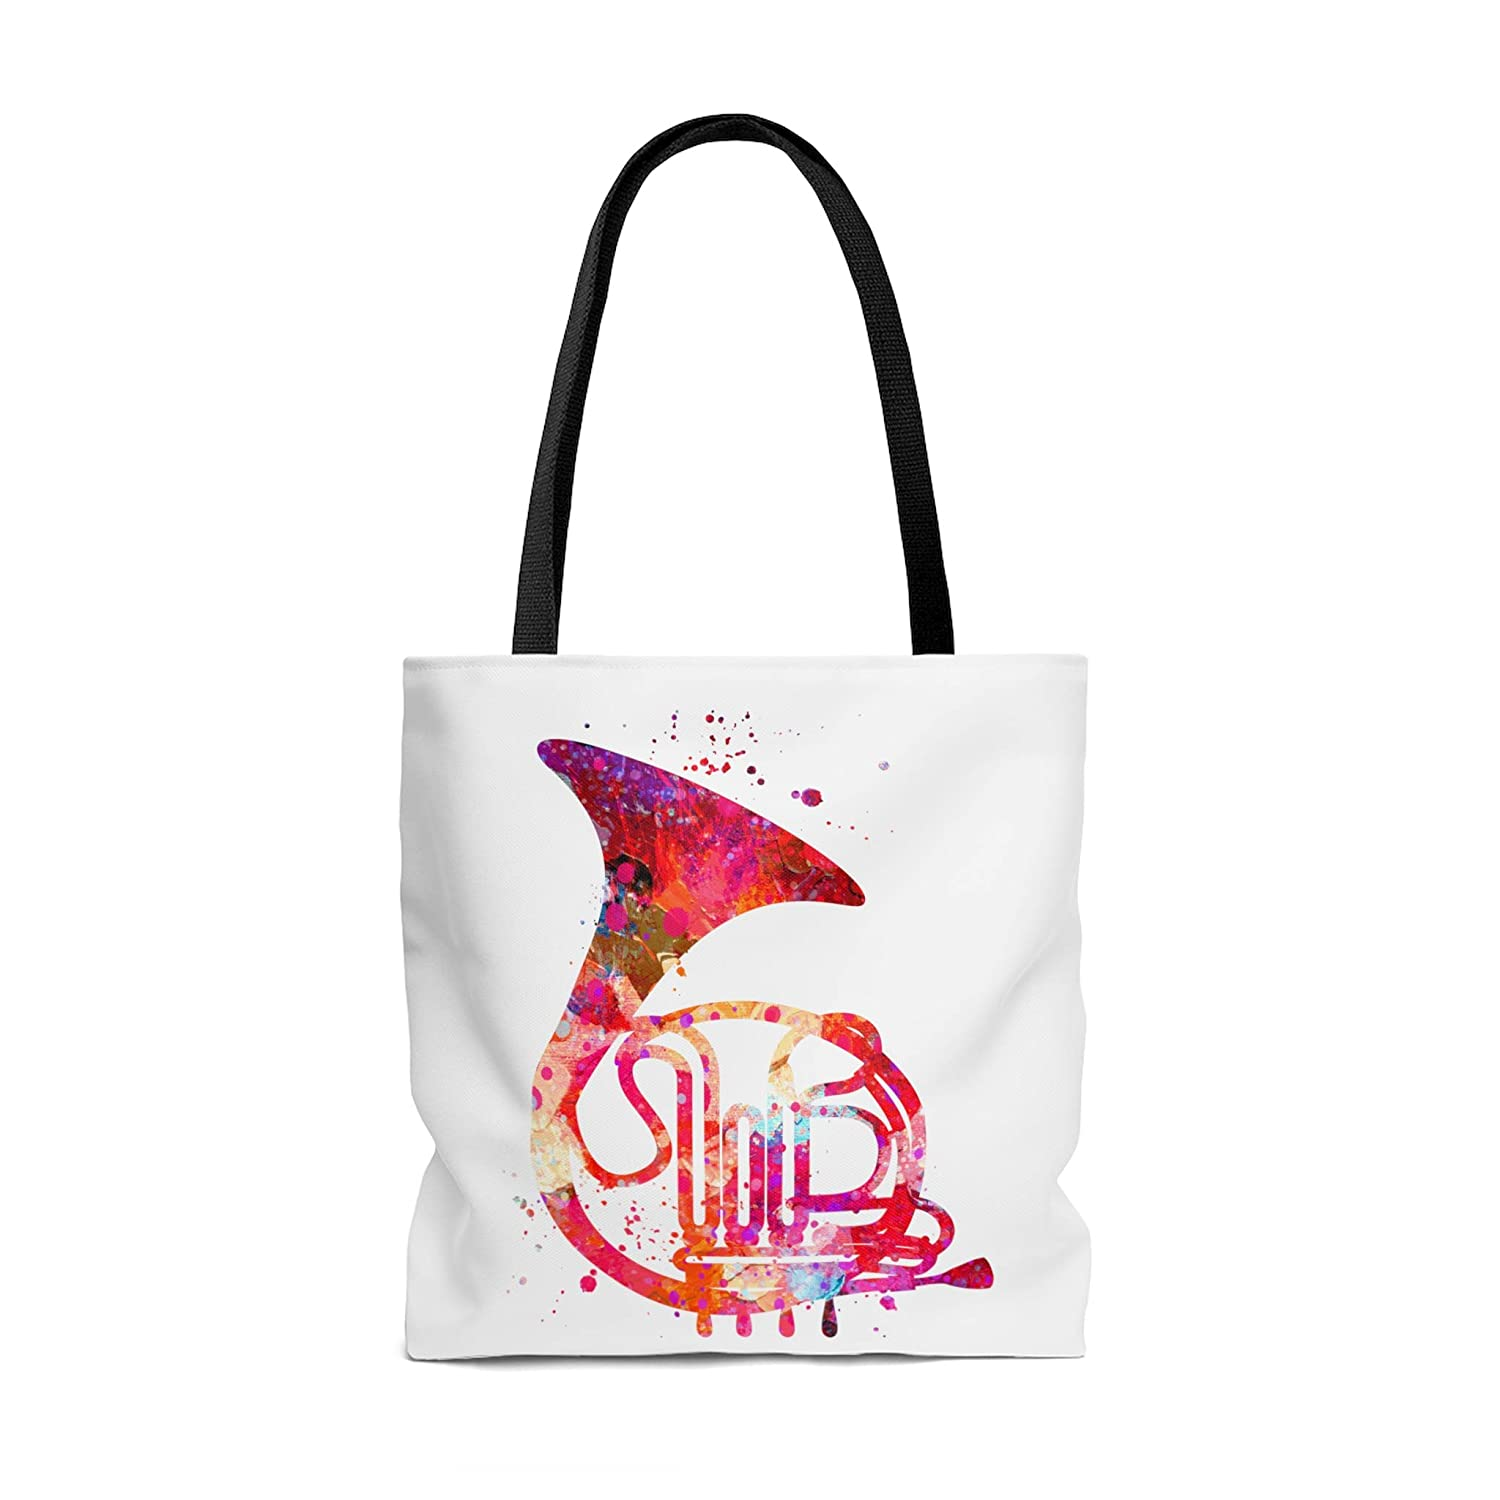 Amazon.com: Watercolor French Horn Tote Bag, Books Bag ...